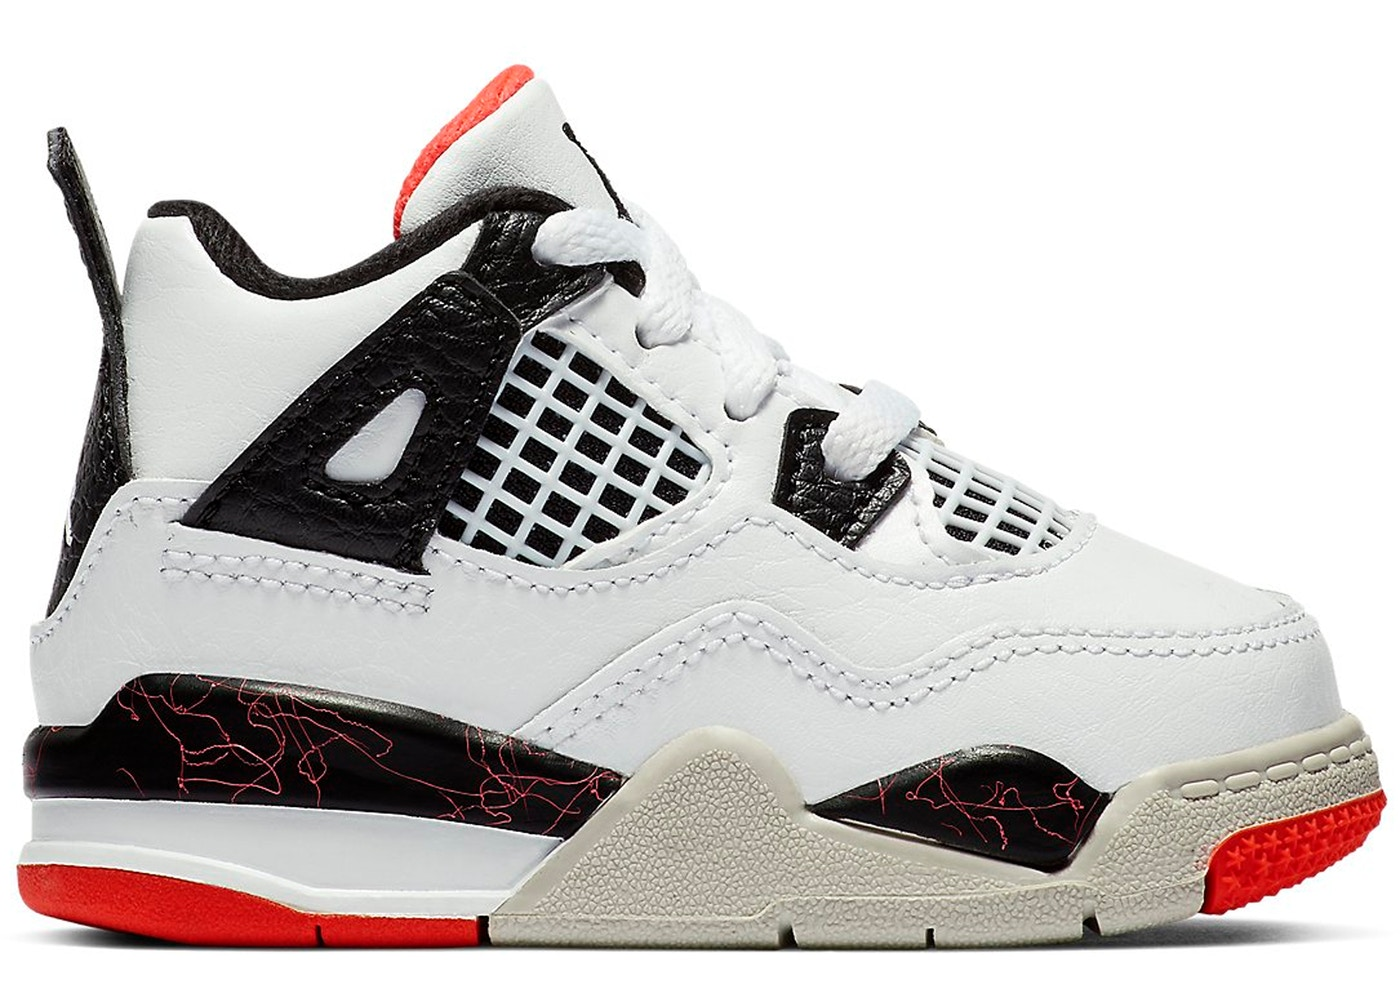 Air Jordan 4 Shoes - Release Date bf7f7b65a